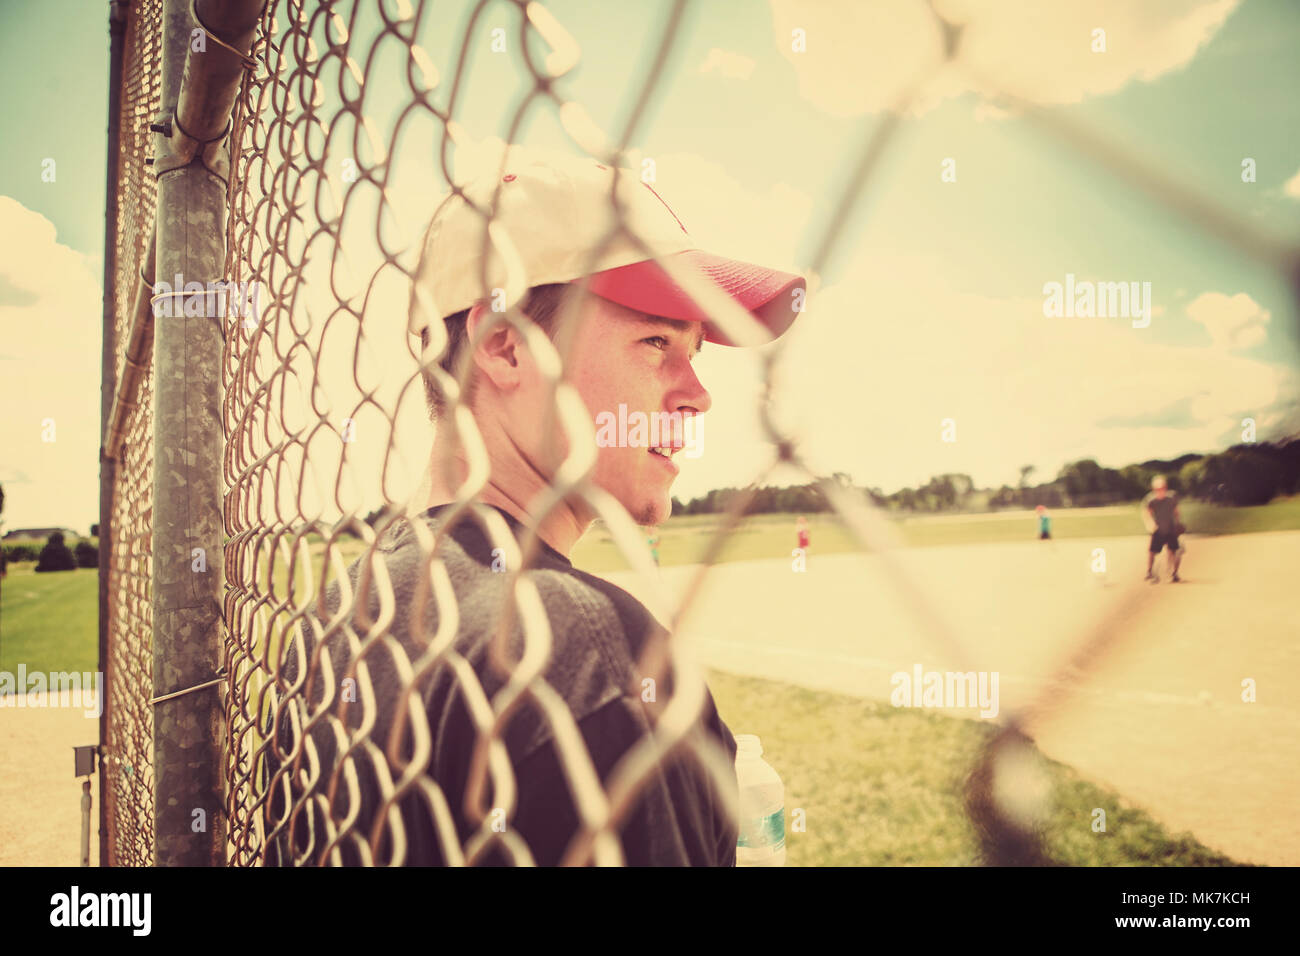 baseball player photographed through the fence colorized - Stock Image